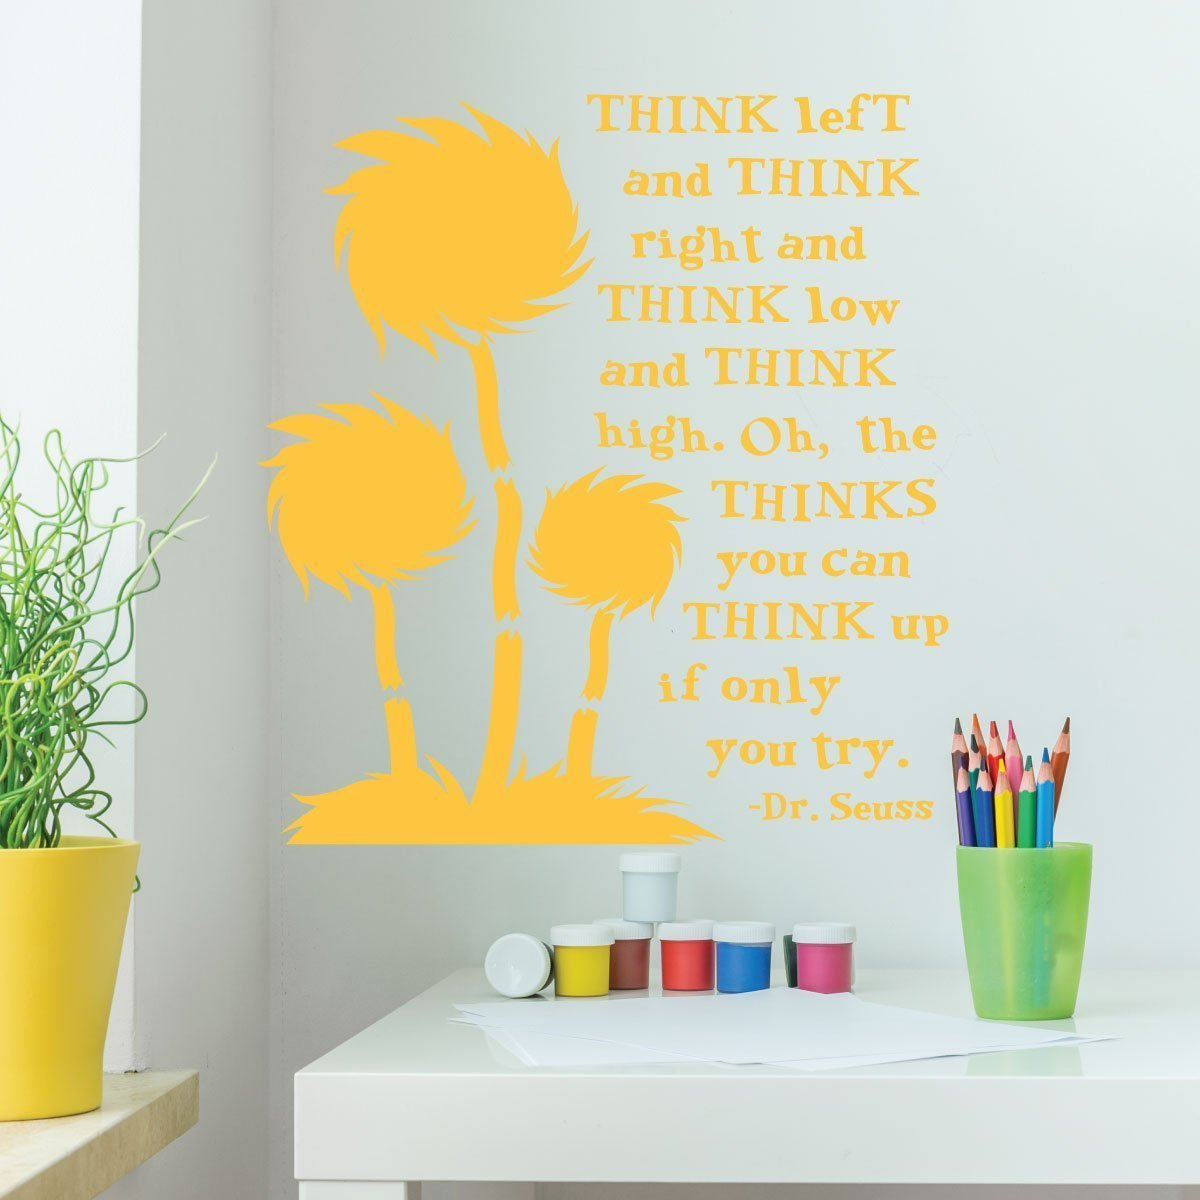 Dr. Seuss Wall Decor for Classrooms -Think Left And Think Right And ...